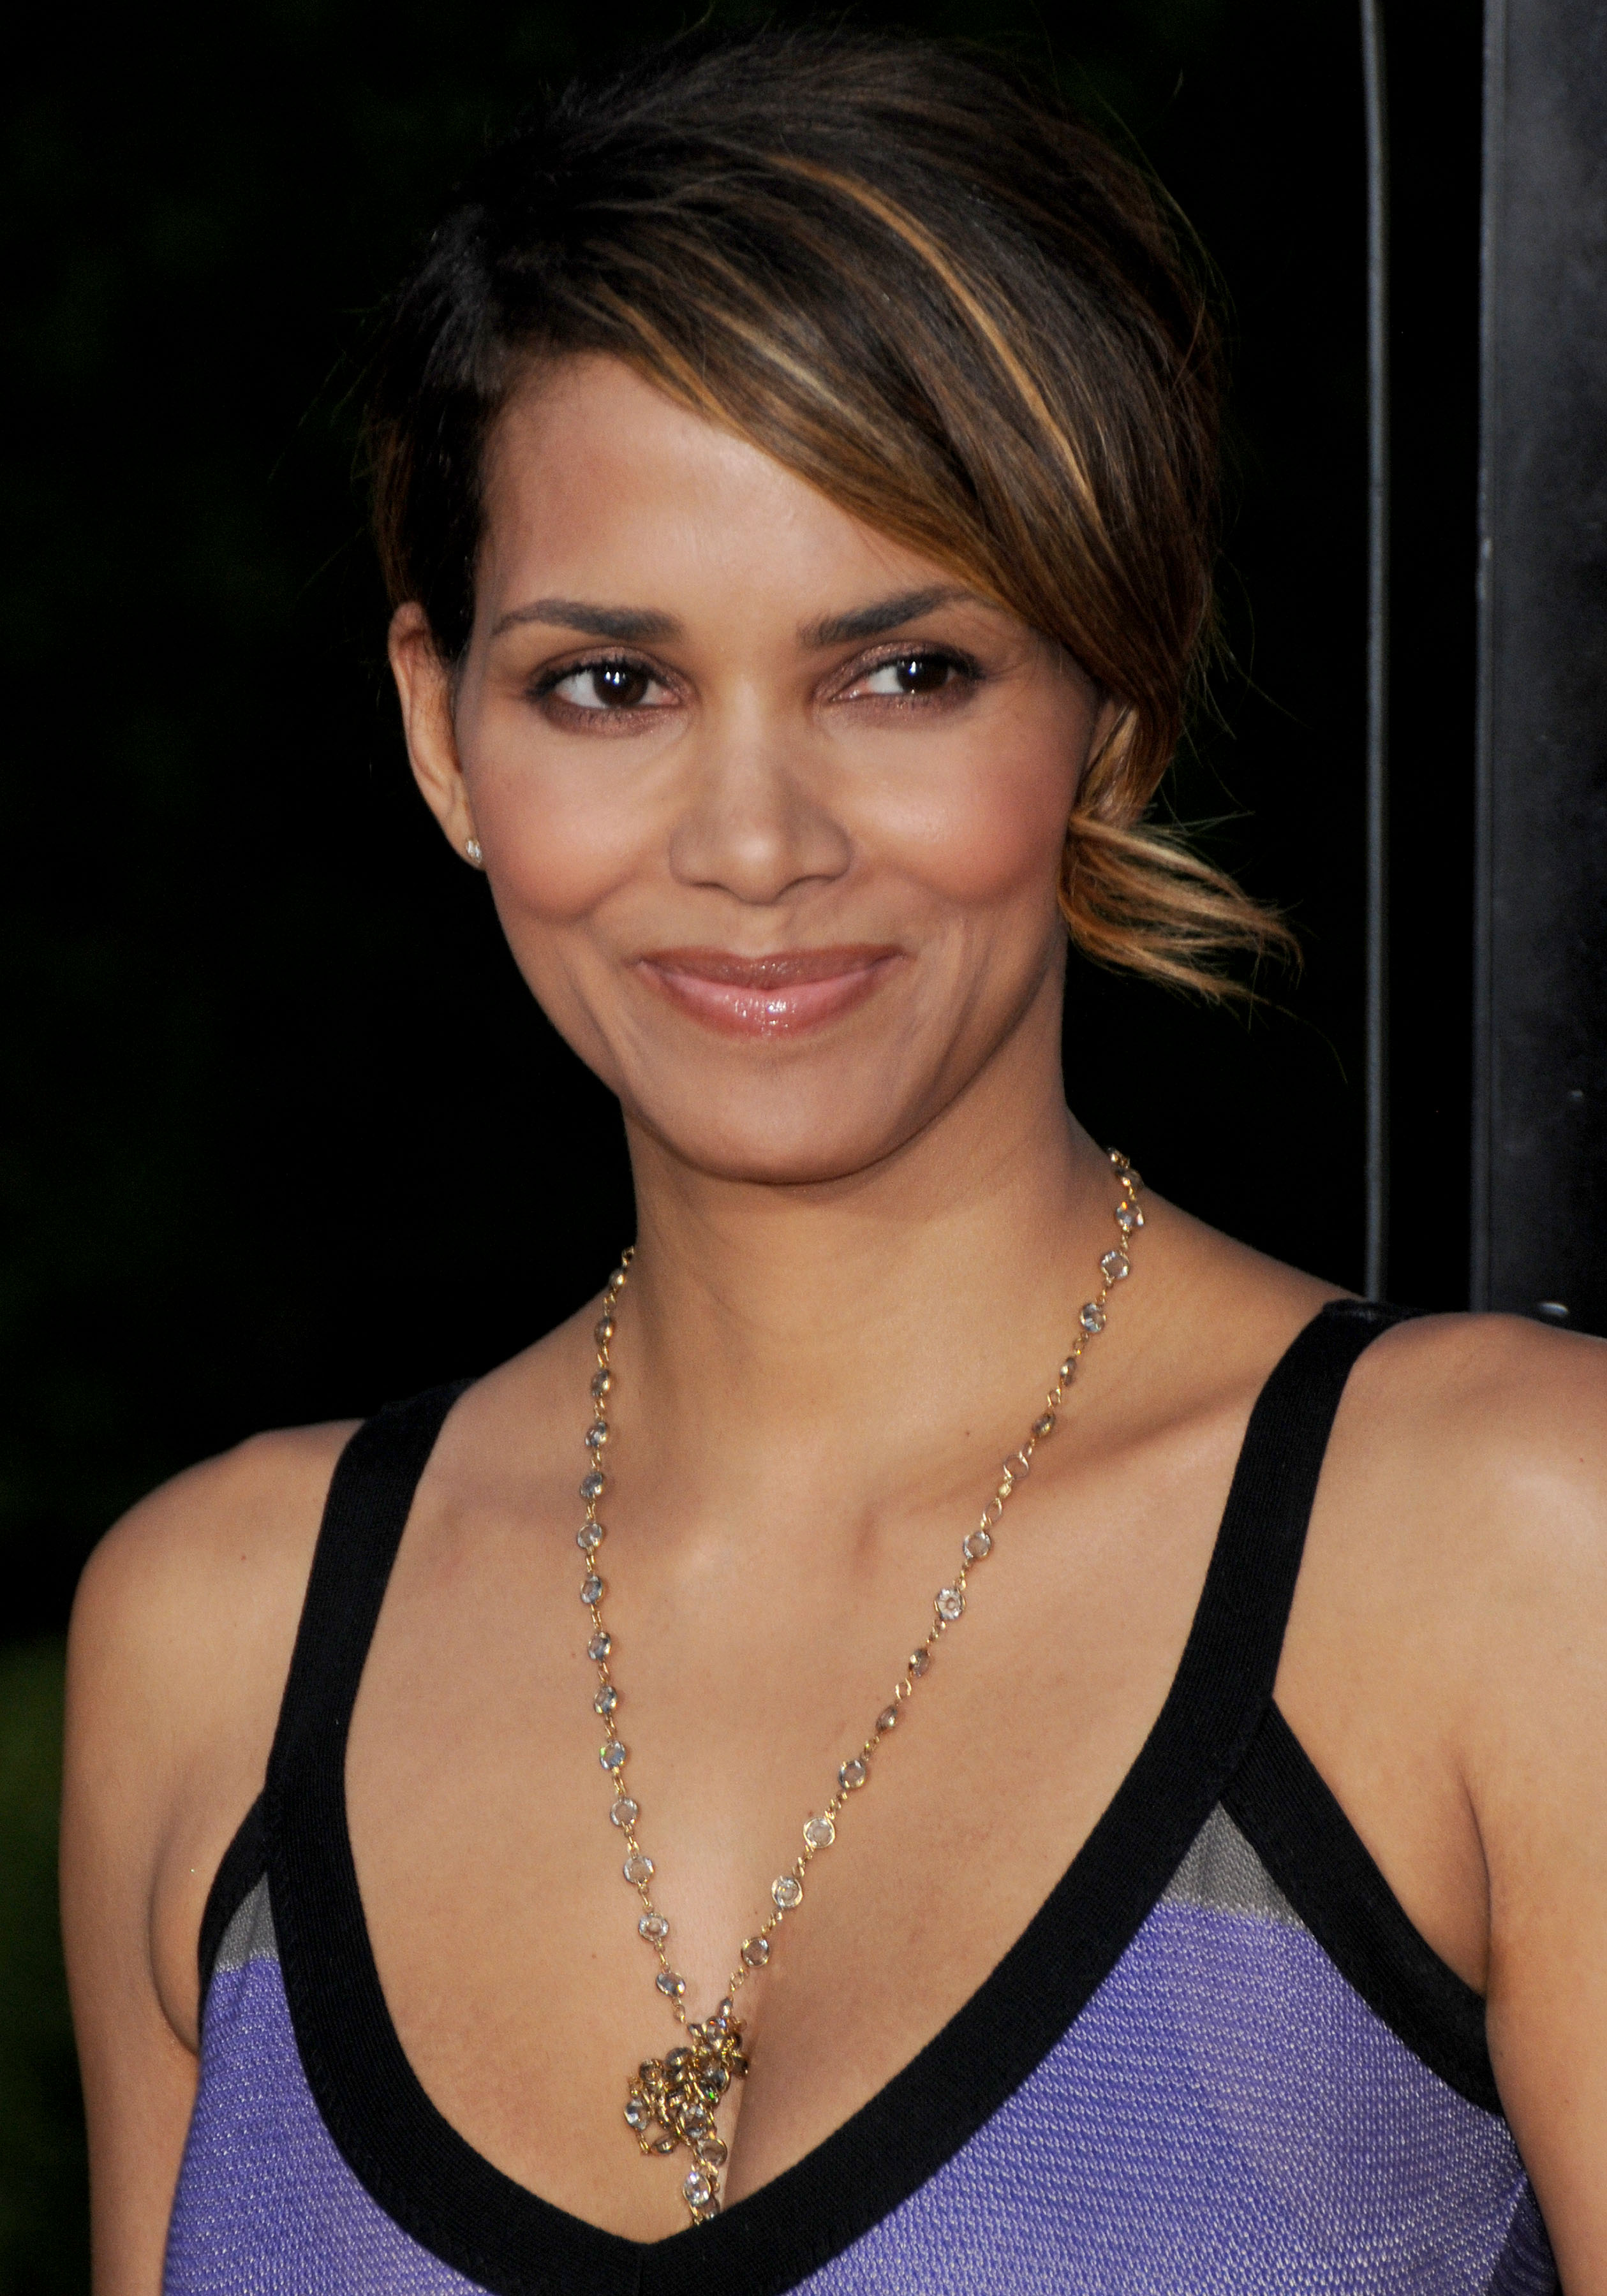 66366_Halle_Berry_The_Soloist_premiere_in_Los_Angeles_80_122_15lo.jpg